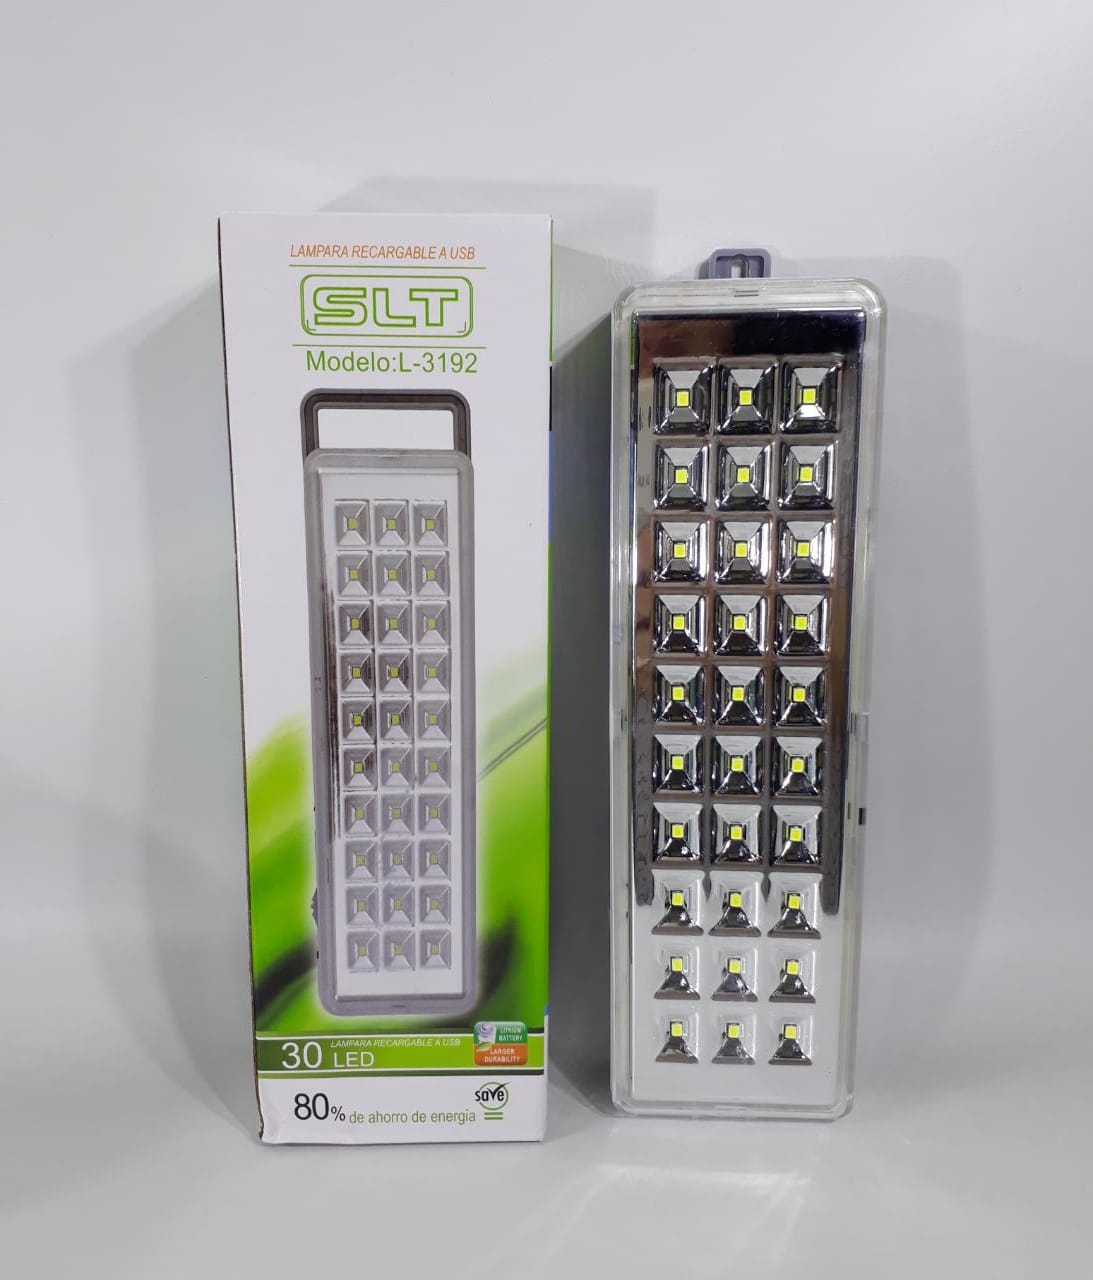 LUZ EMERGENCIA DE 30 LED KD-830